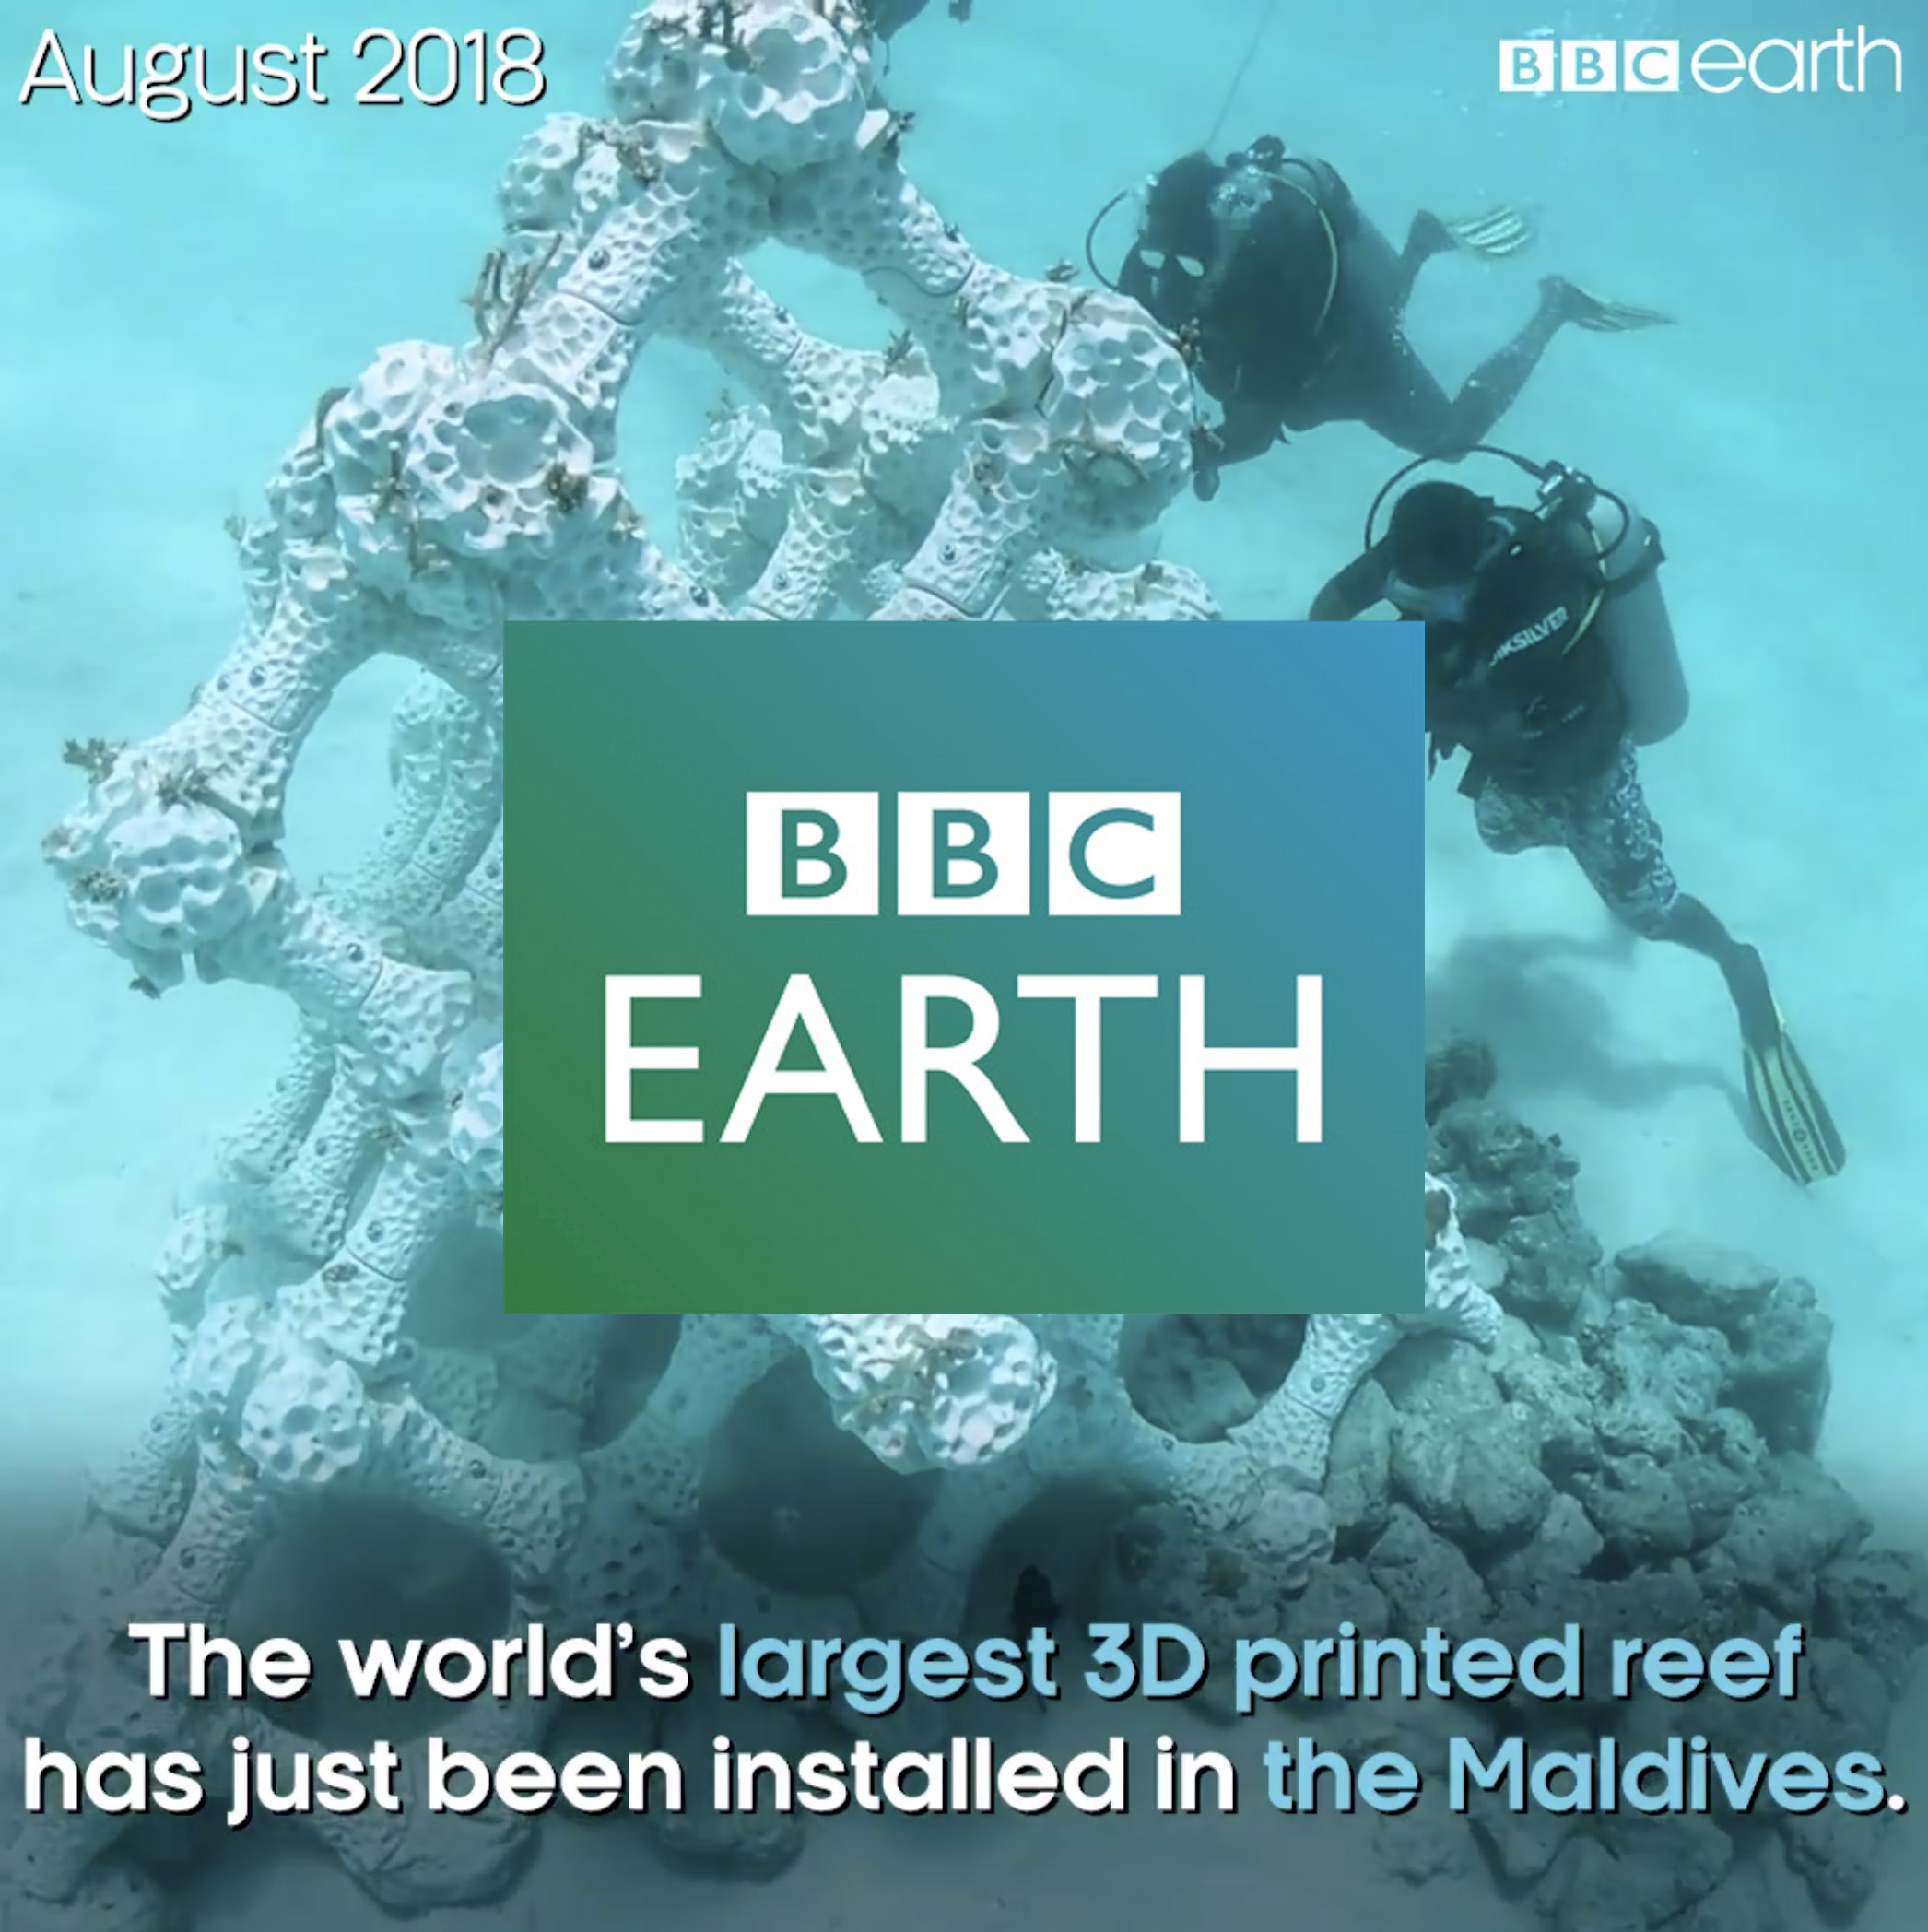 BBC EARTH Feature.jpg